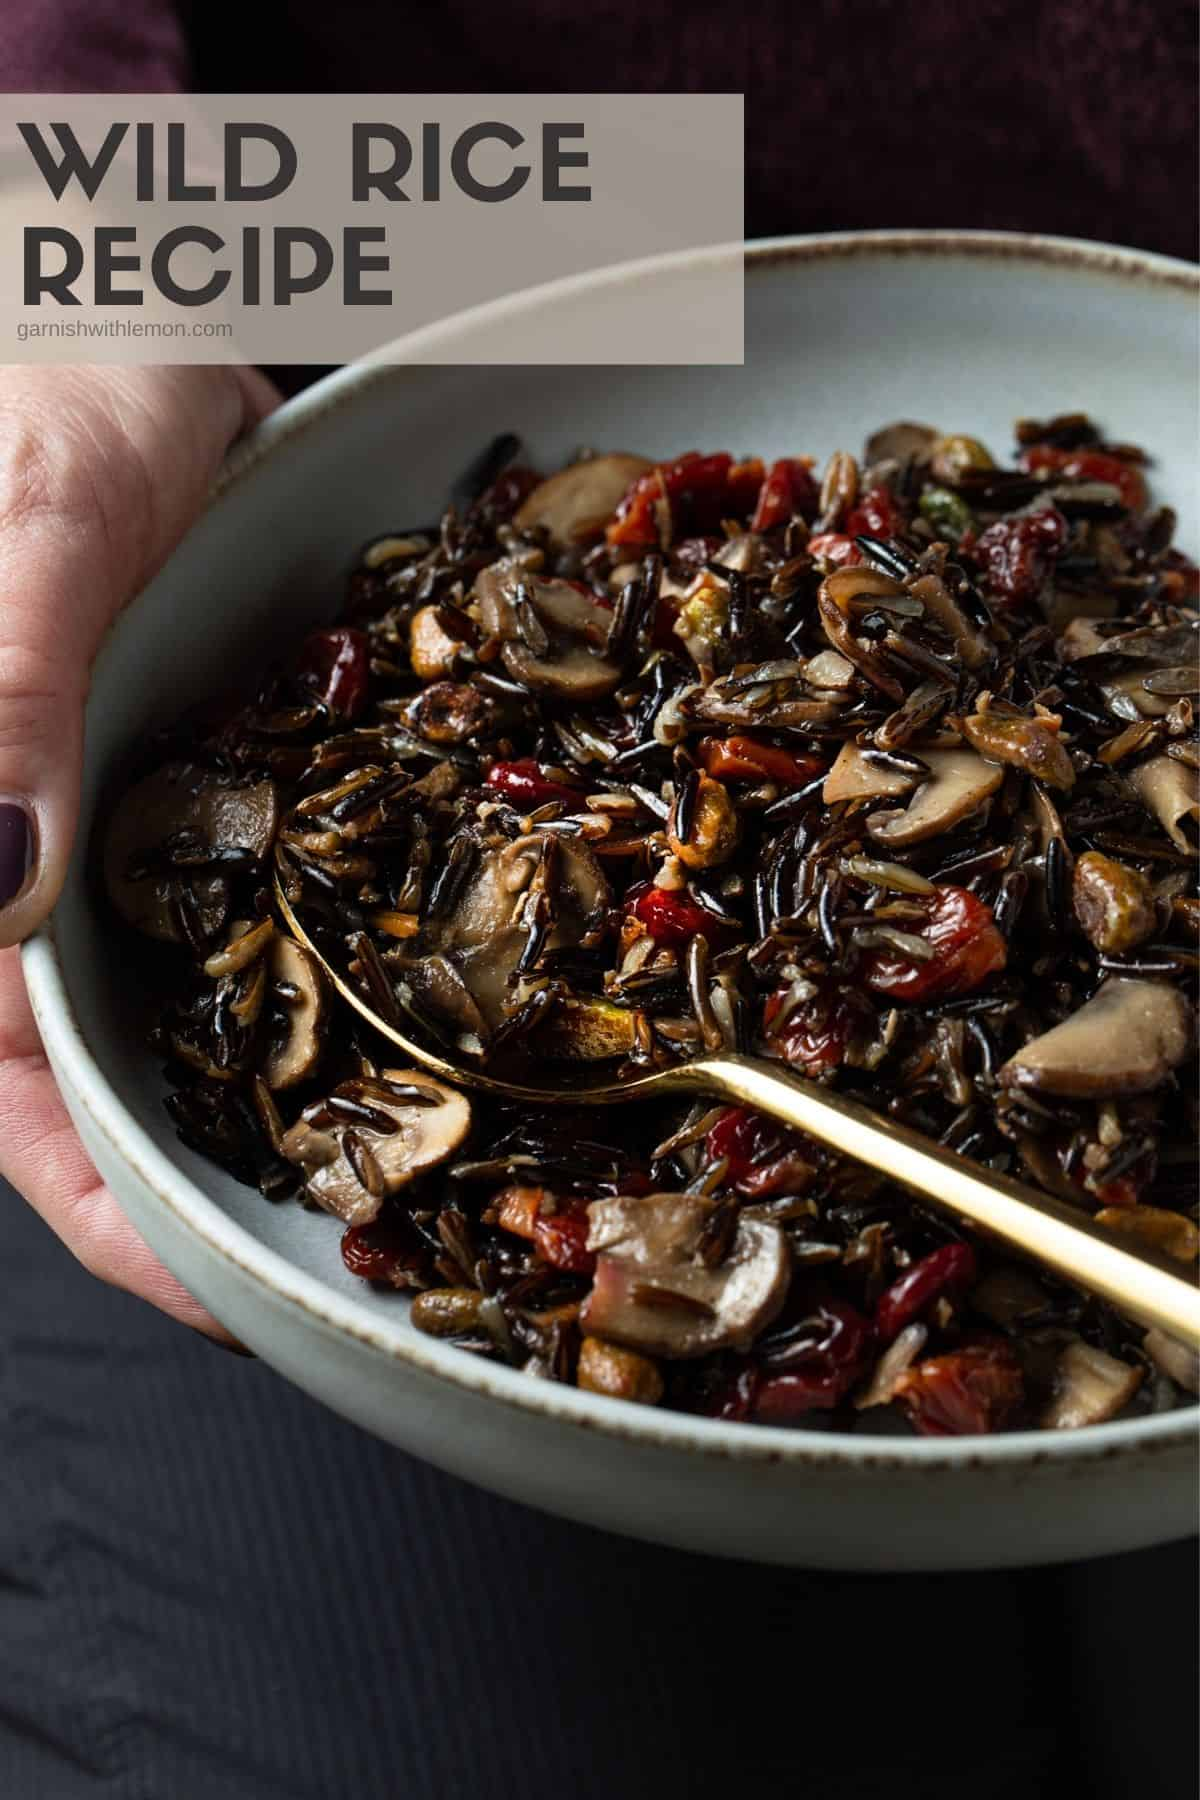 Cooked wild rice, pistachios, cherries and mushrooms in a gray bowl.